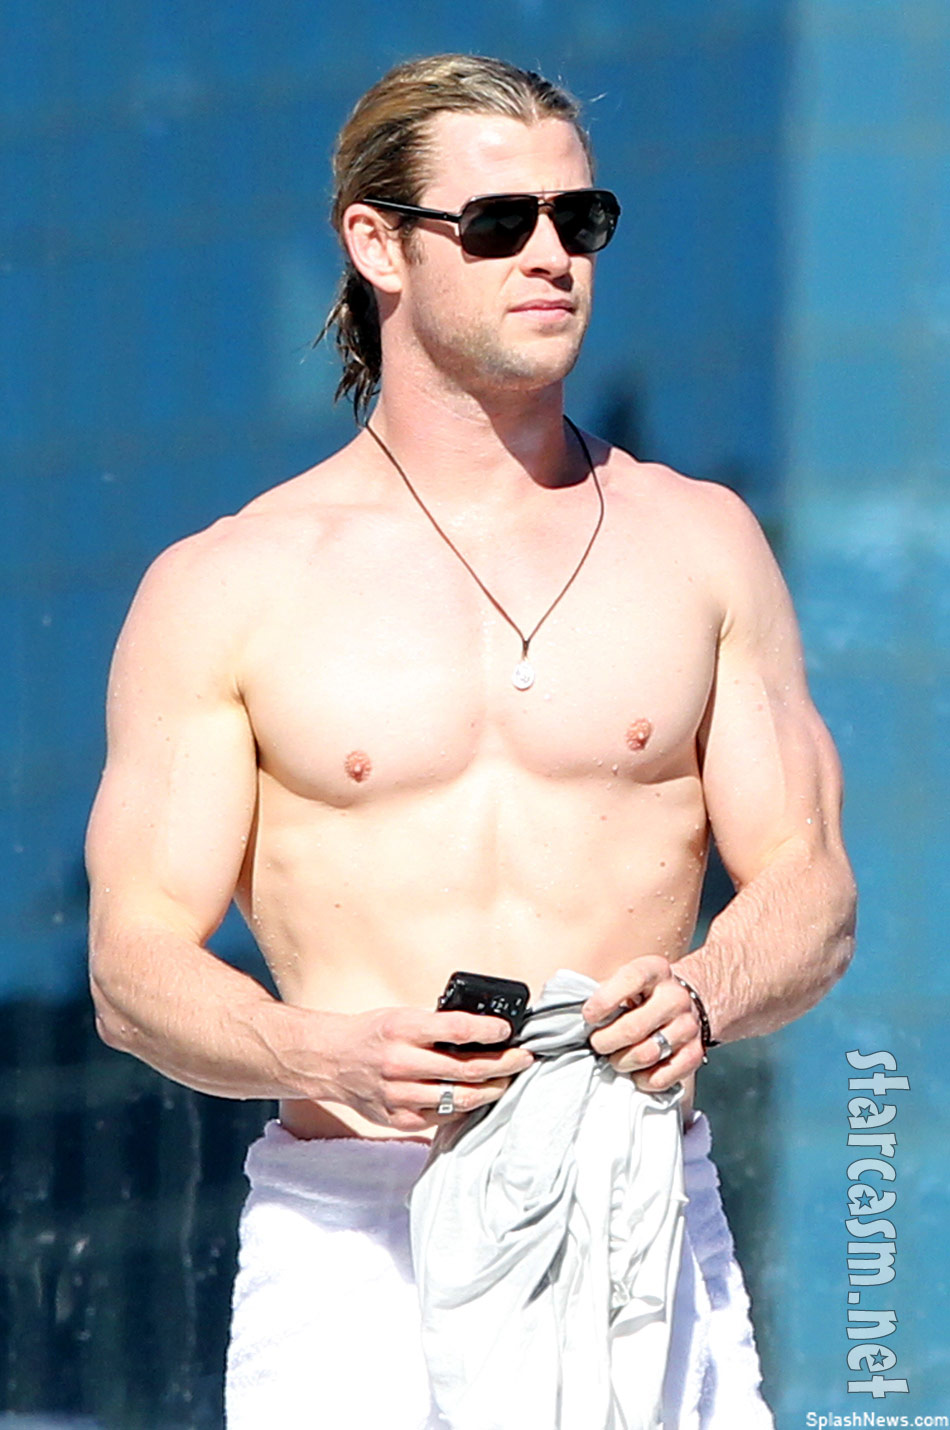 Chris Hemsworth rocks his hard body Down Under